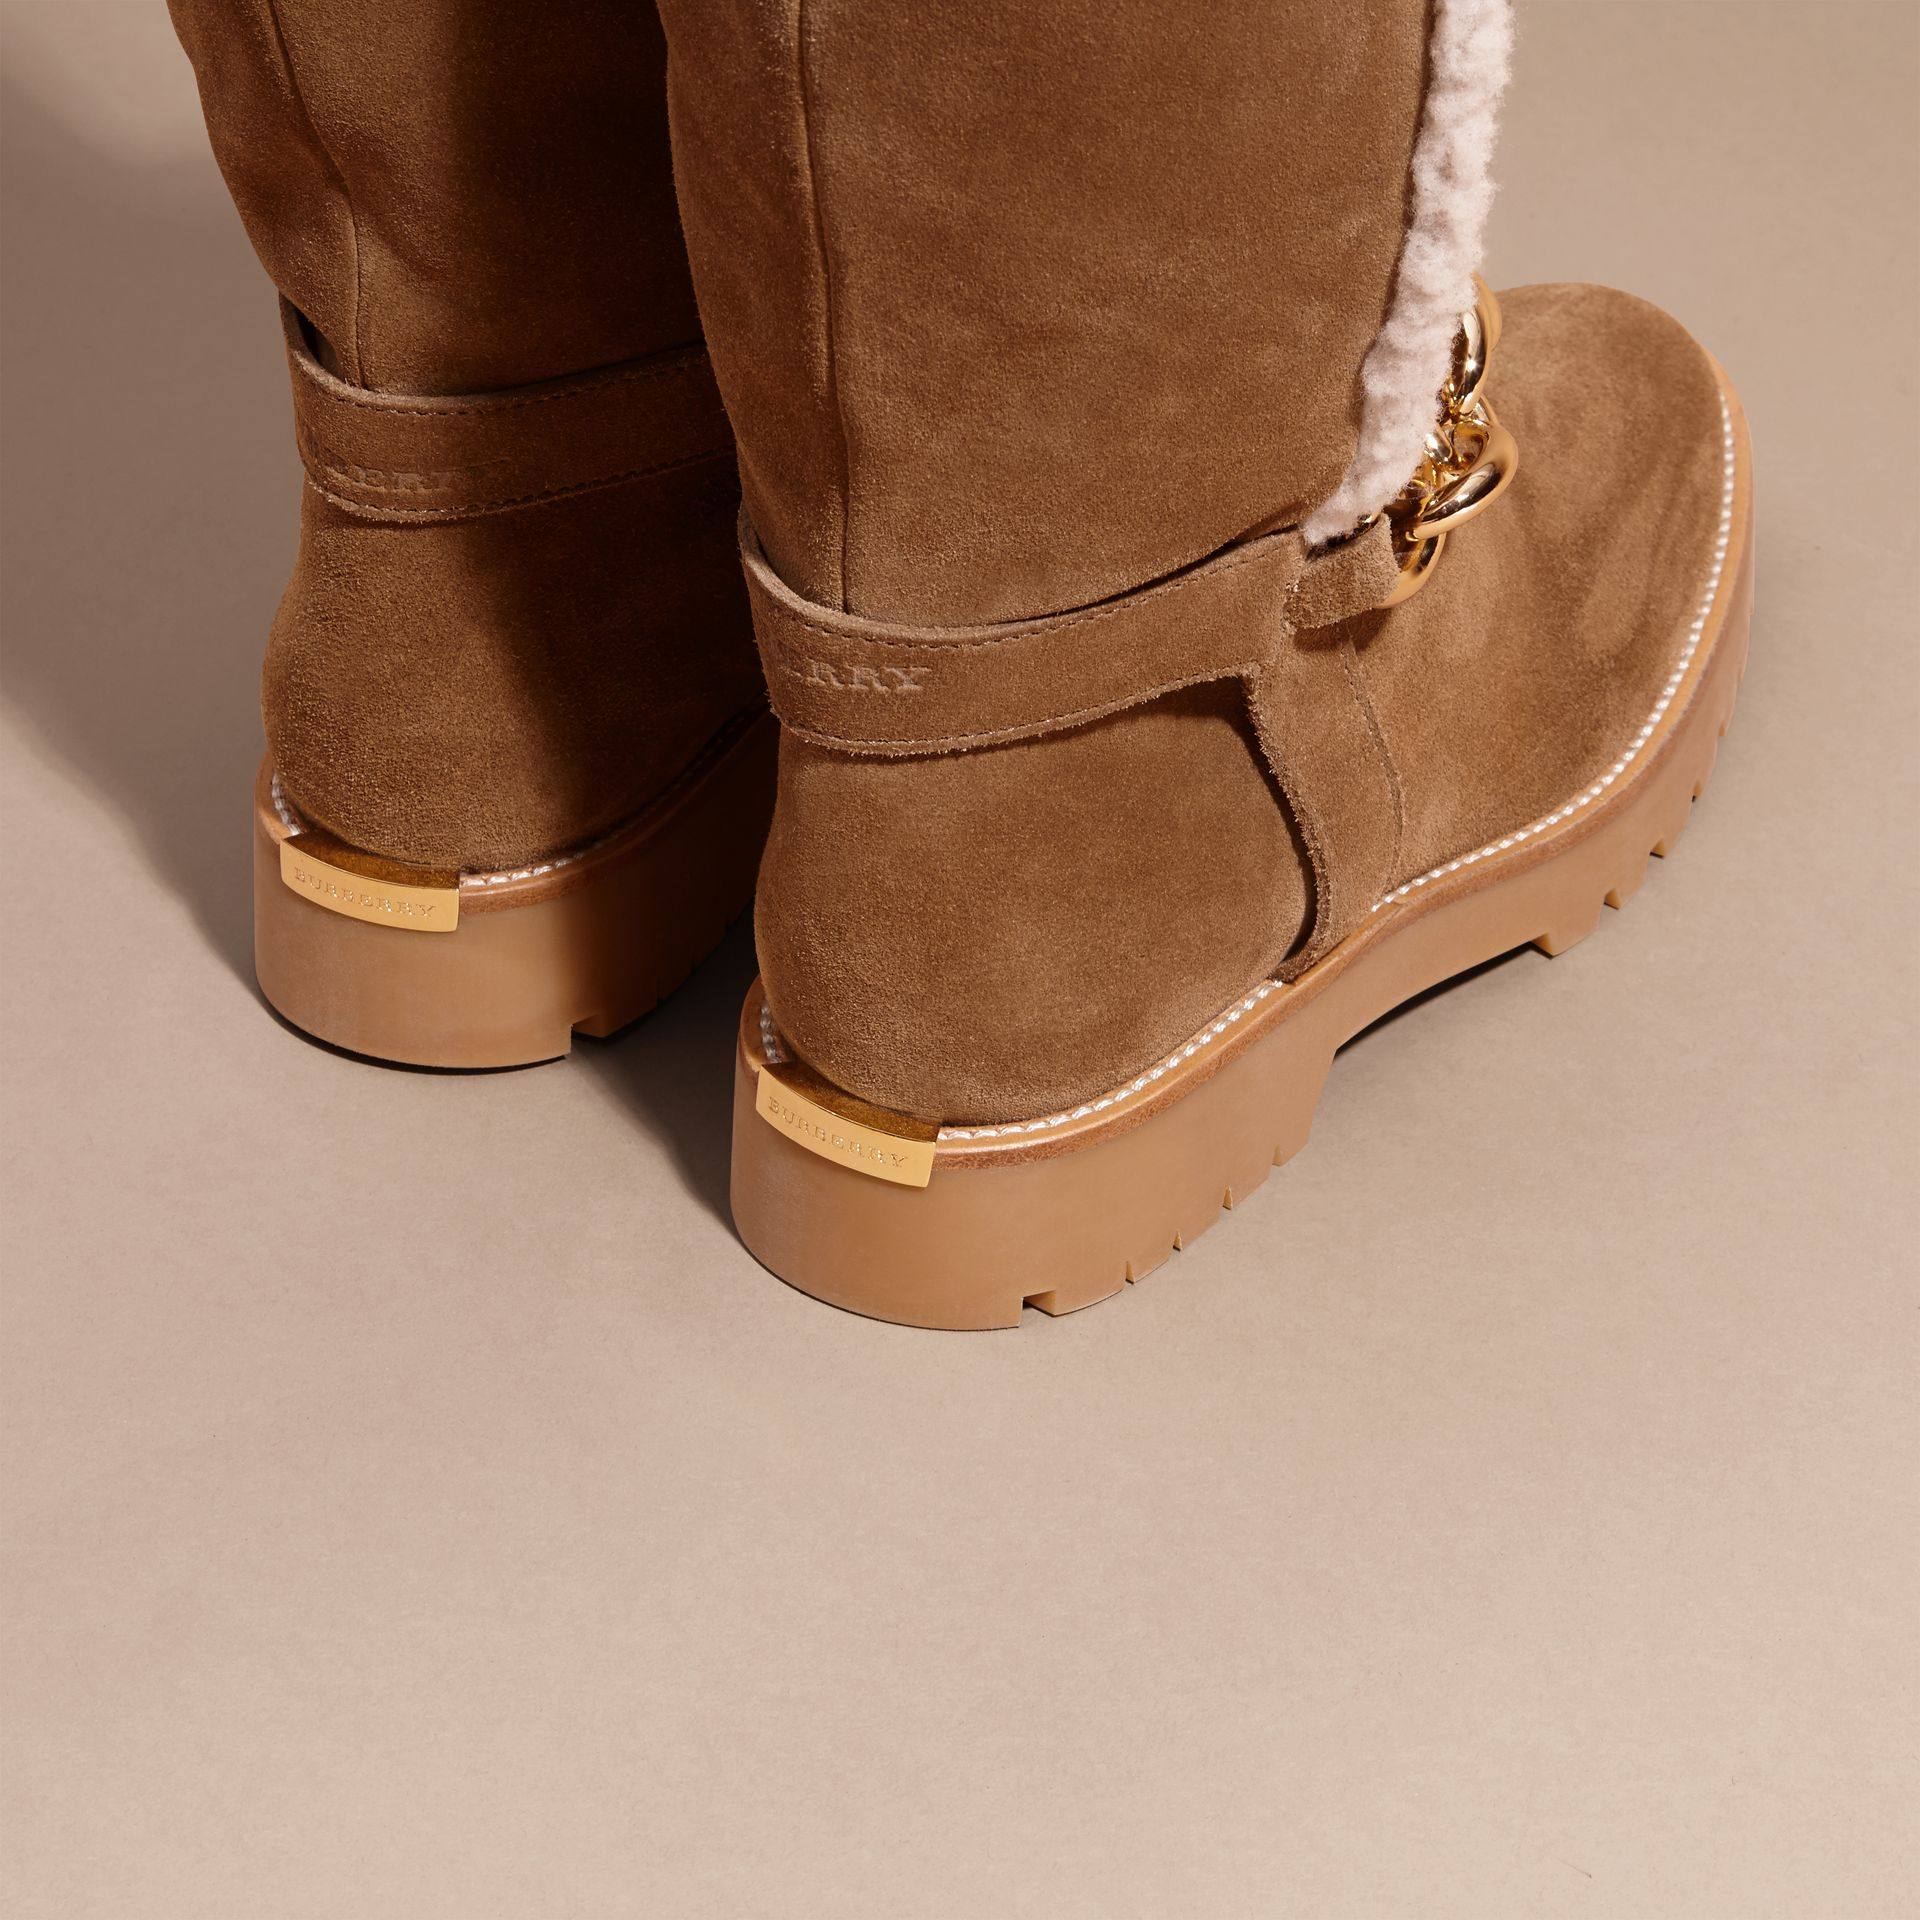 Light oak brown Chain Detail Shearling and Suede Boots - gallery image 4